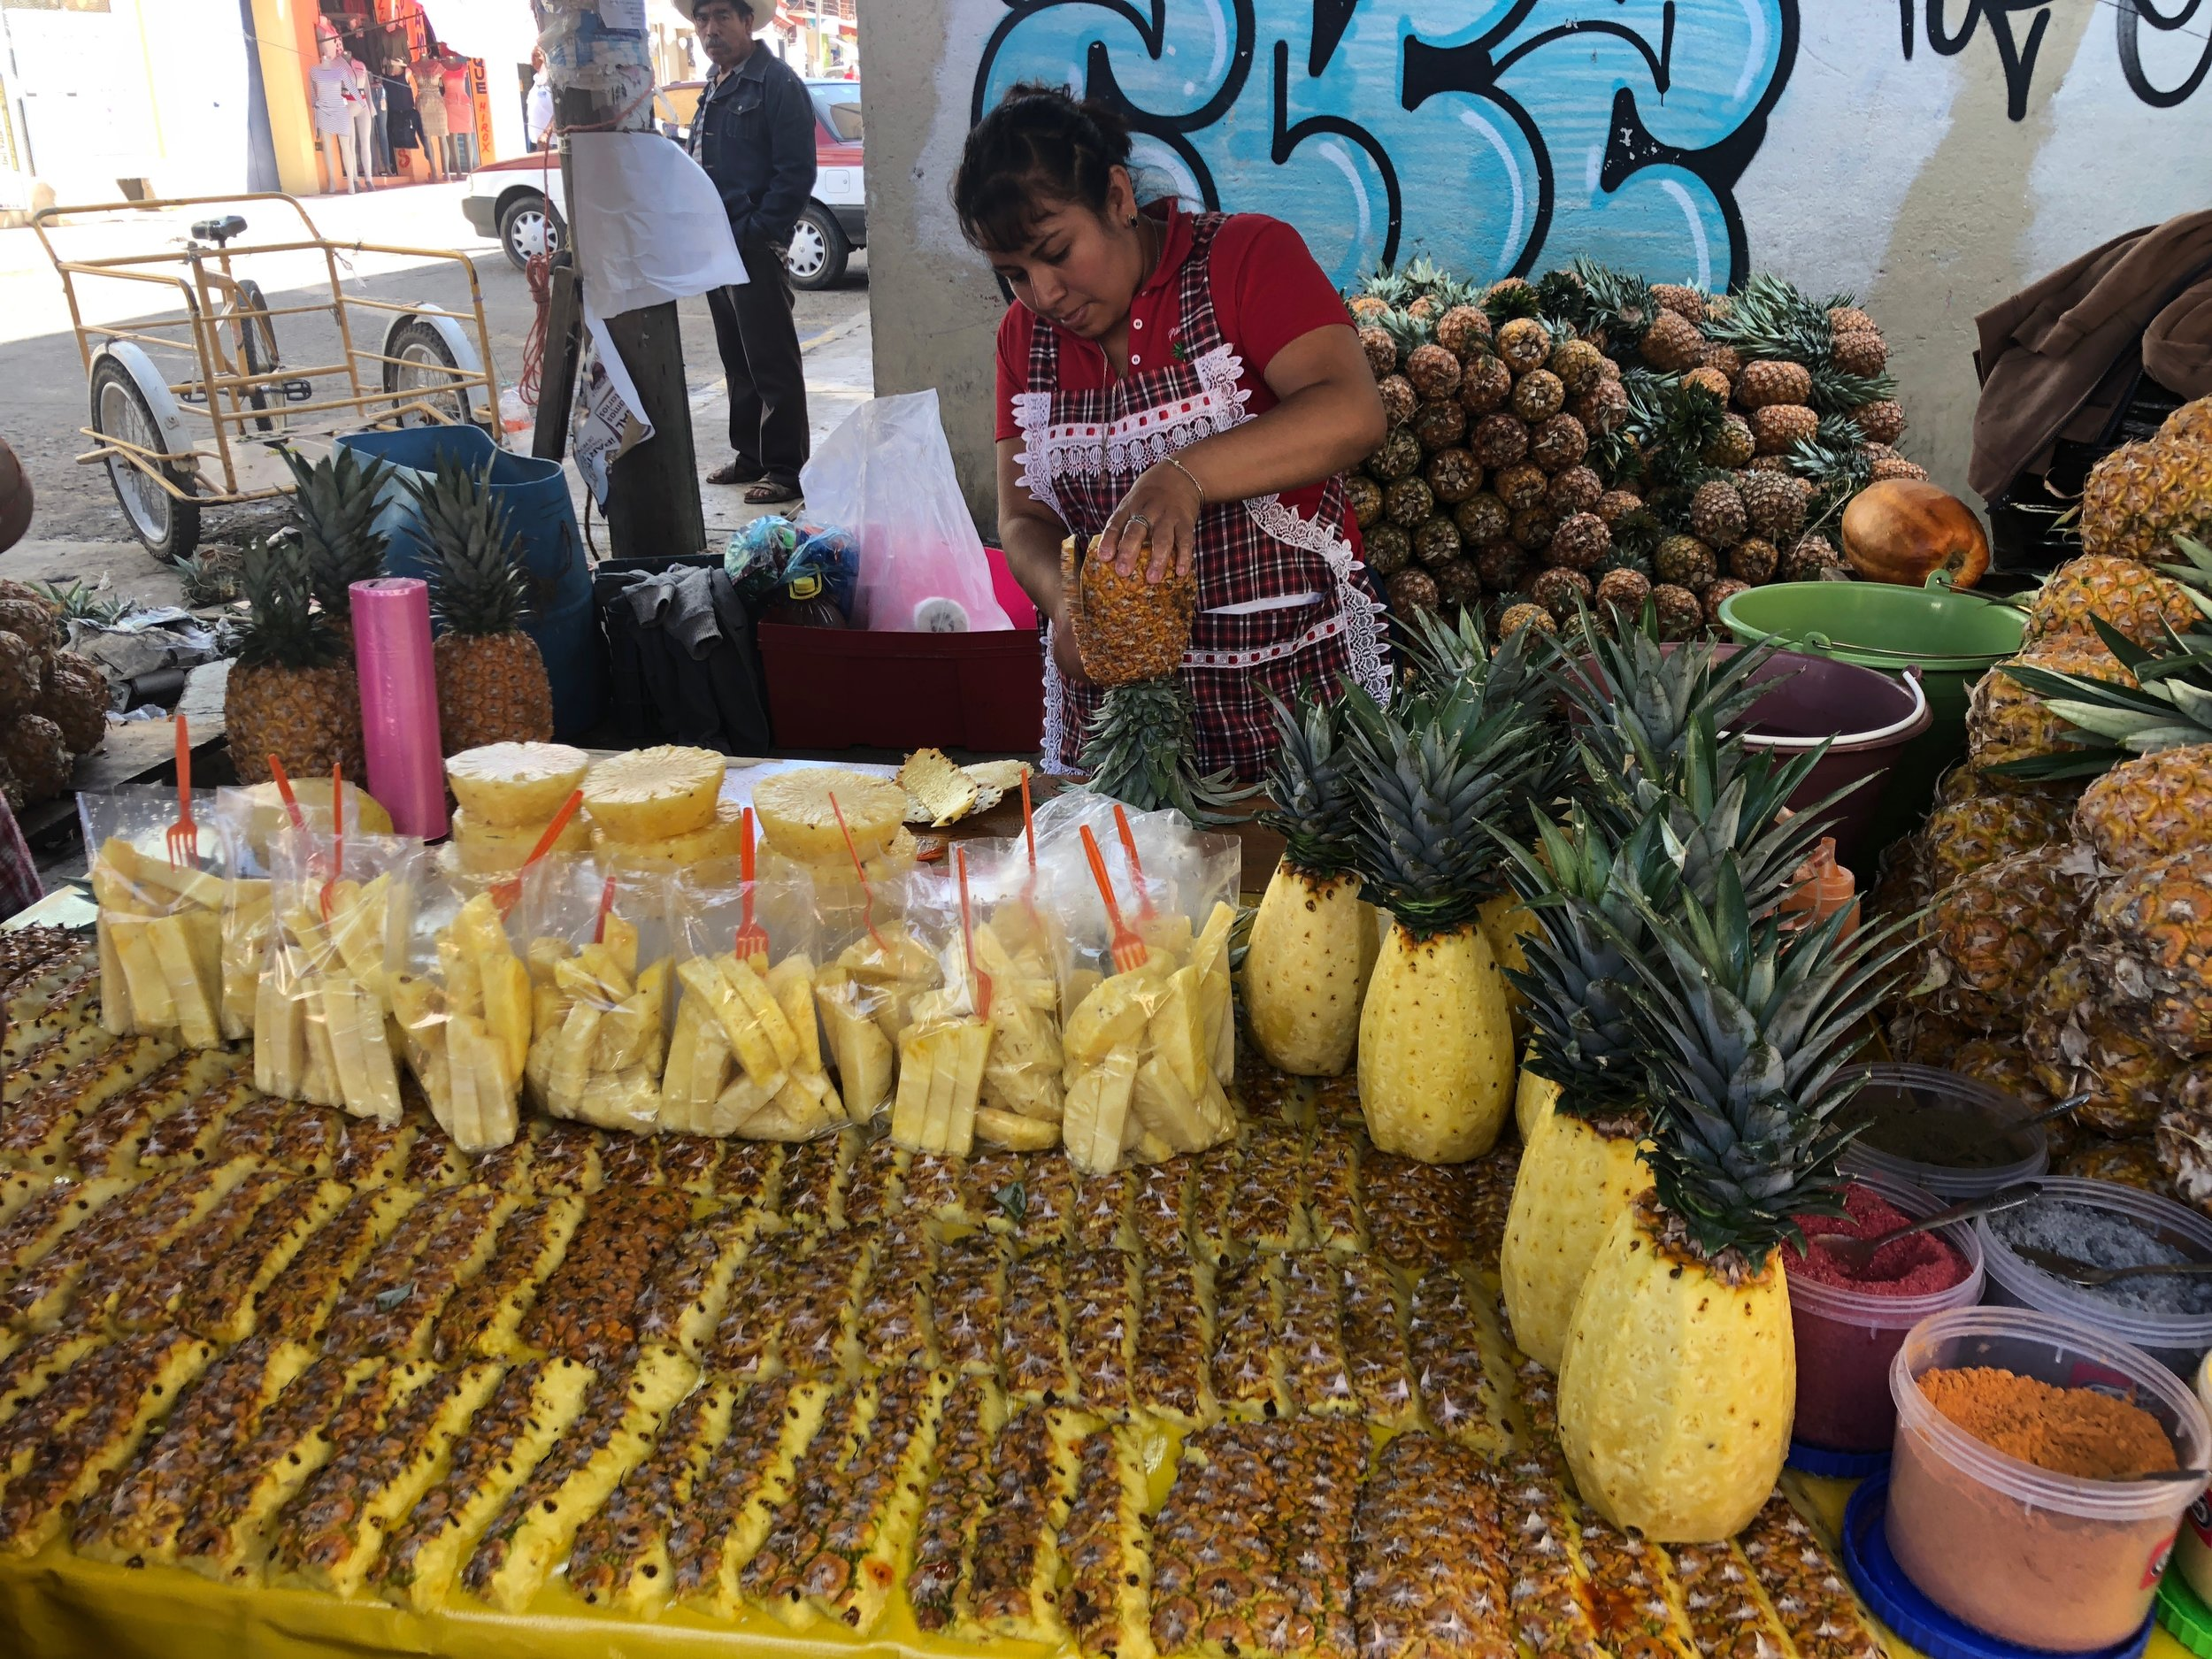 Eating fresh pineapple is one of our favorite things to do!